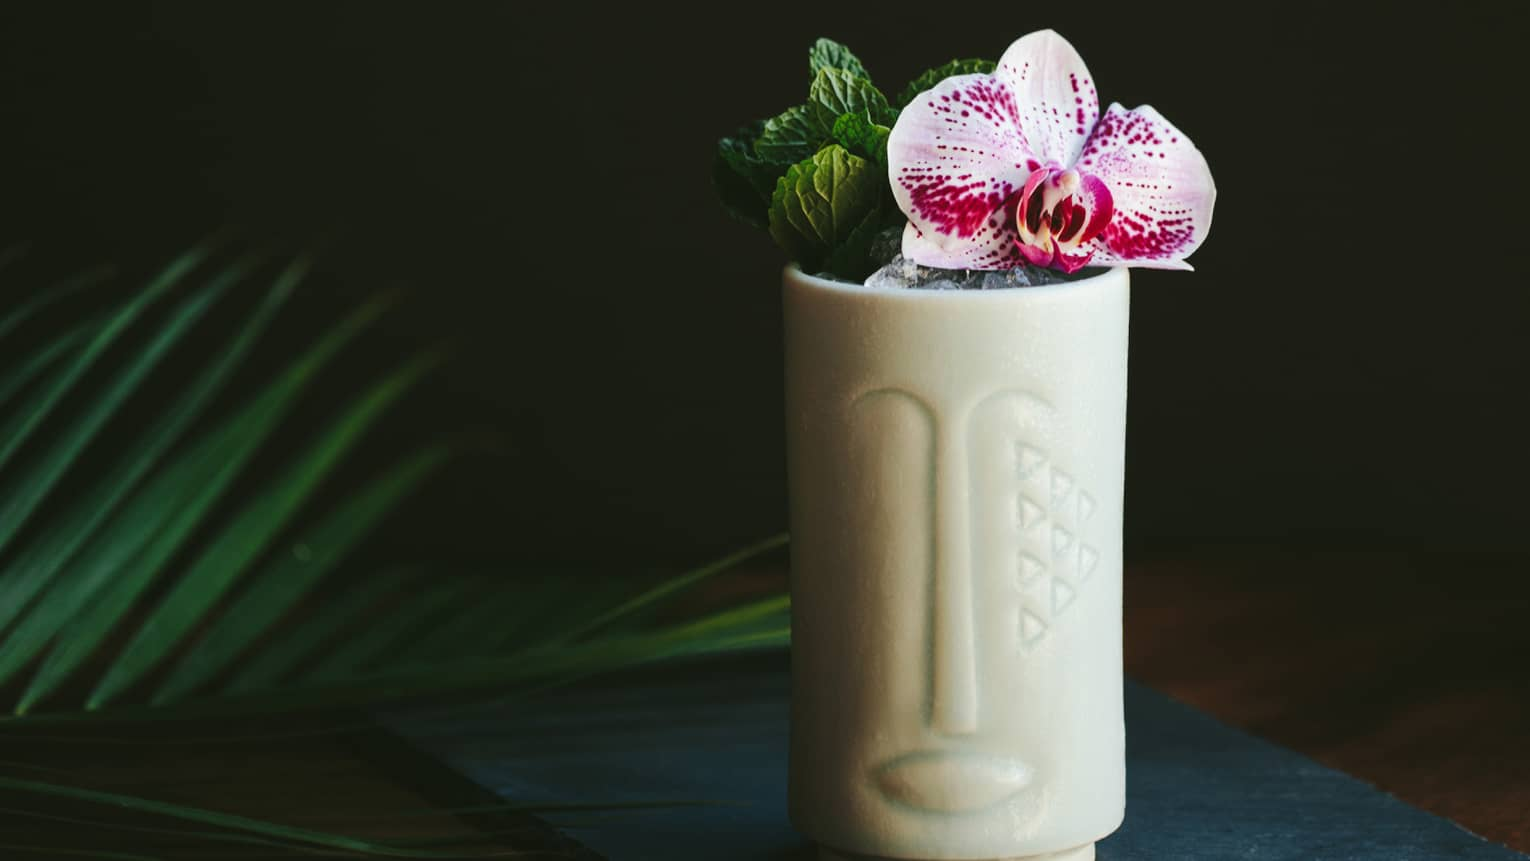 The Talisman cocktail in a tiki shaped glass with fresh flowers as a garnish